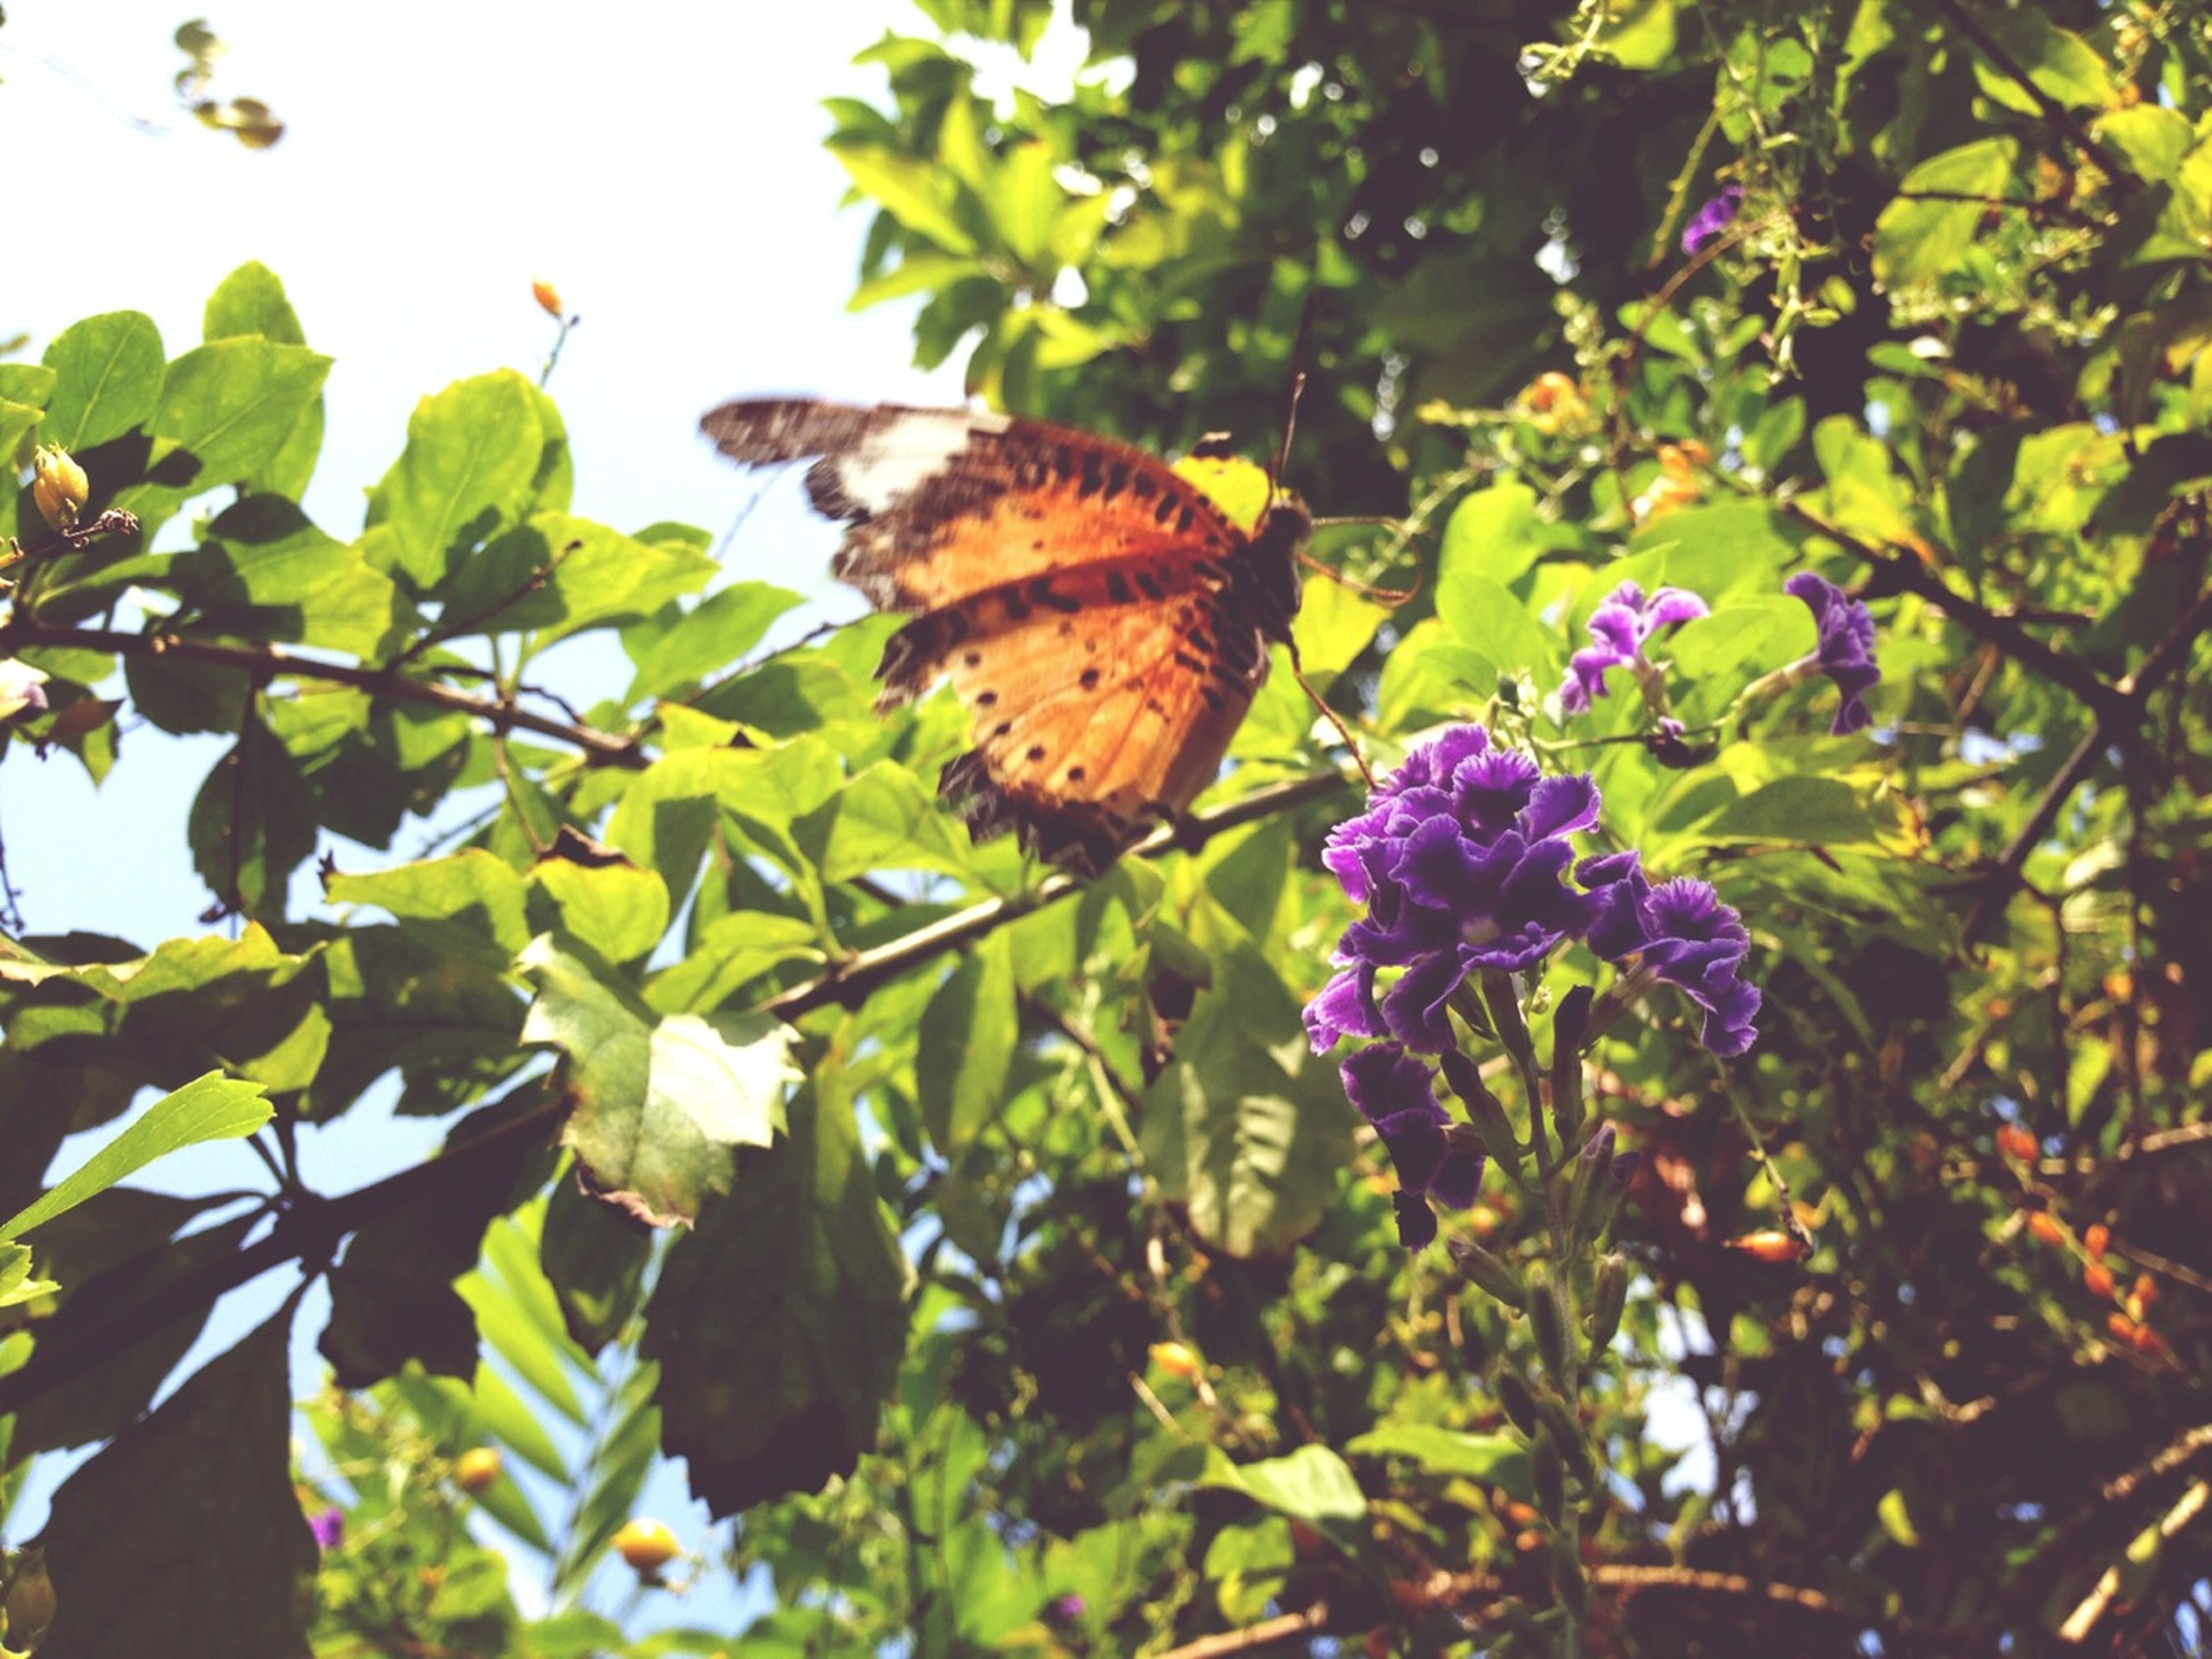 one animal, leaf, animals in the wild, animal themes, wildlife, flower, growth, insect, plant, butterfly - insect, nature, beauty in nature, butterfly, fragility, low angle view, green color, perching, close-up, branch, tree